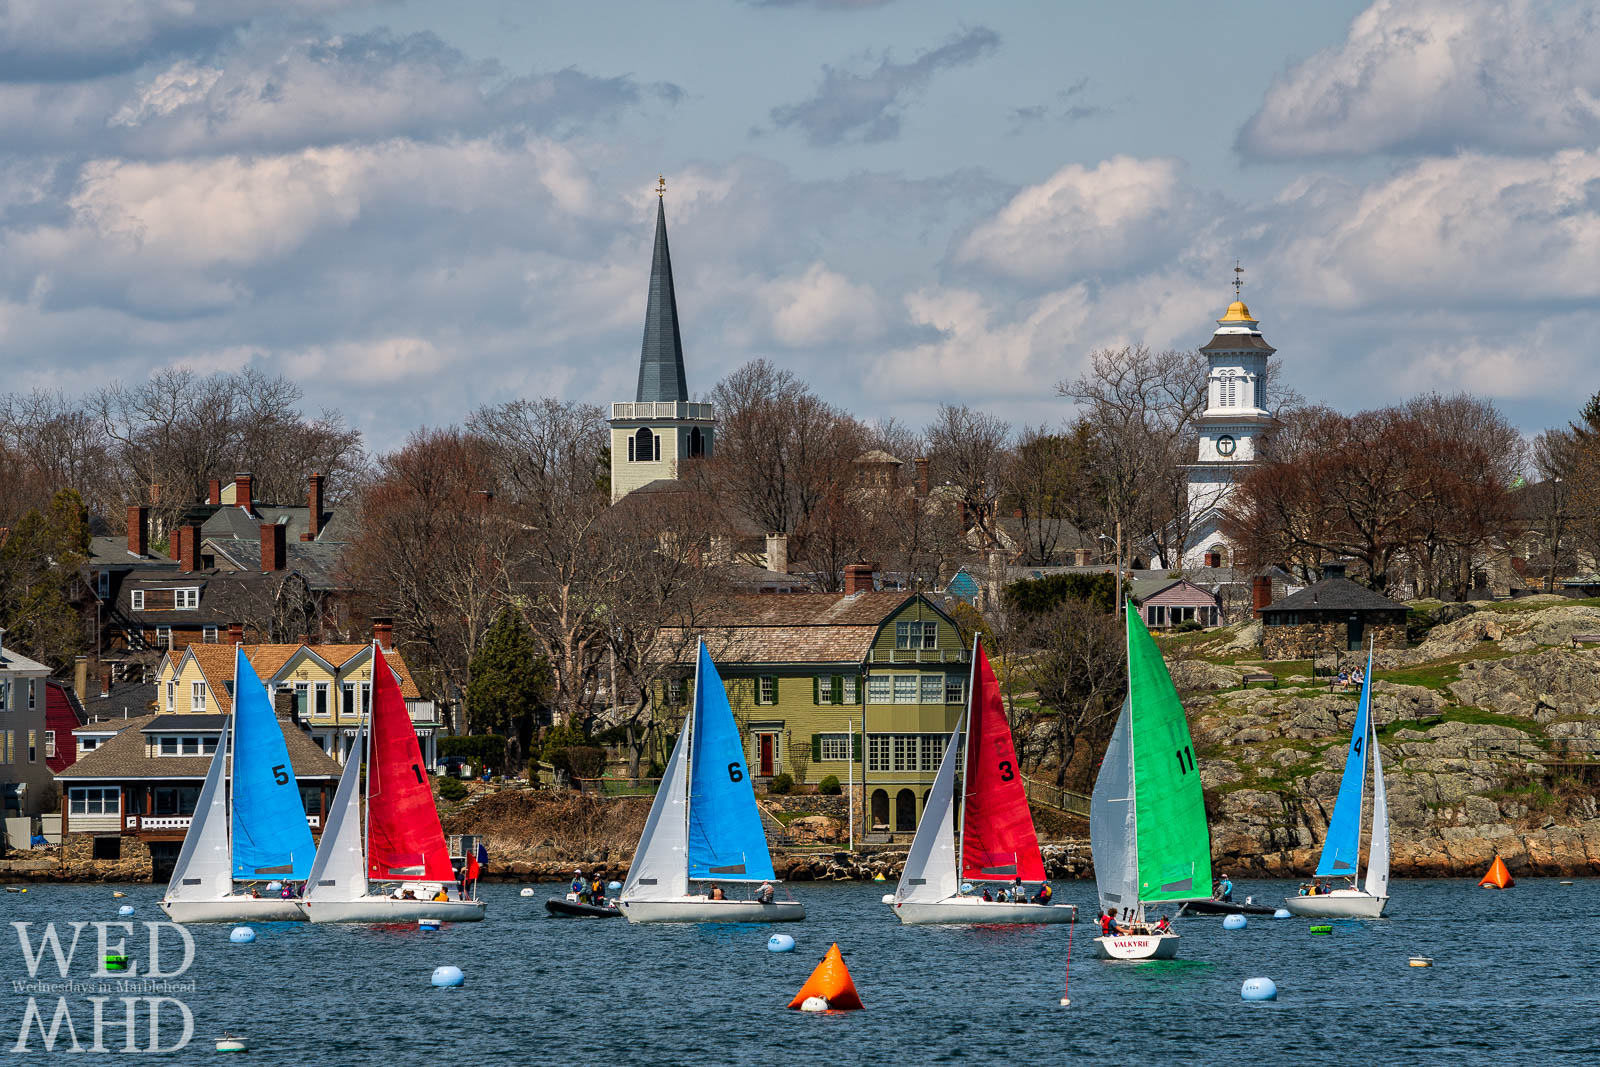 One design boats race for the Jackson Cup in front of the St. Michaels Steeple and Grace Community Church